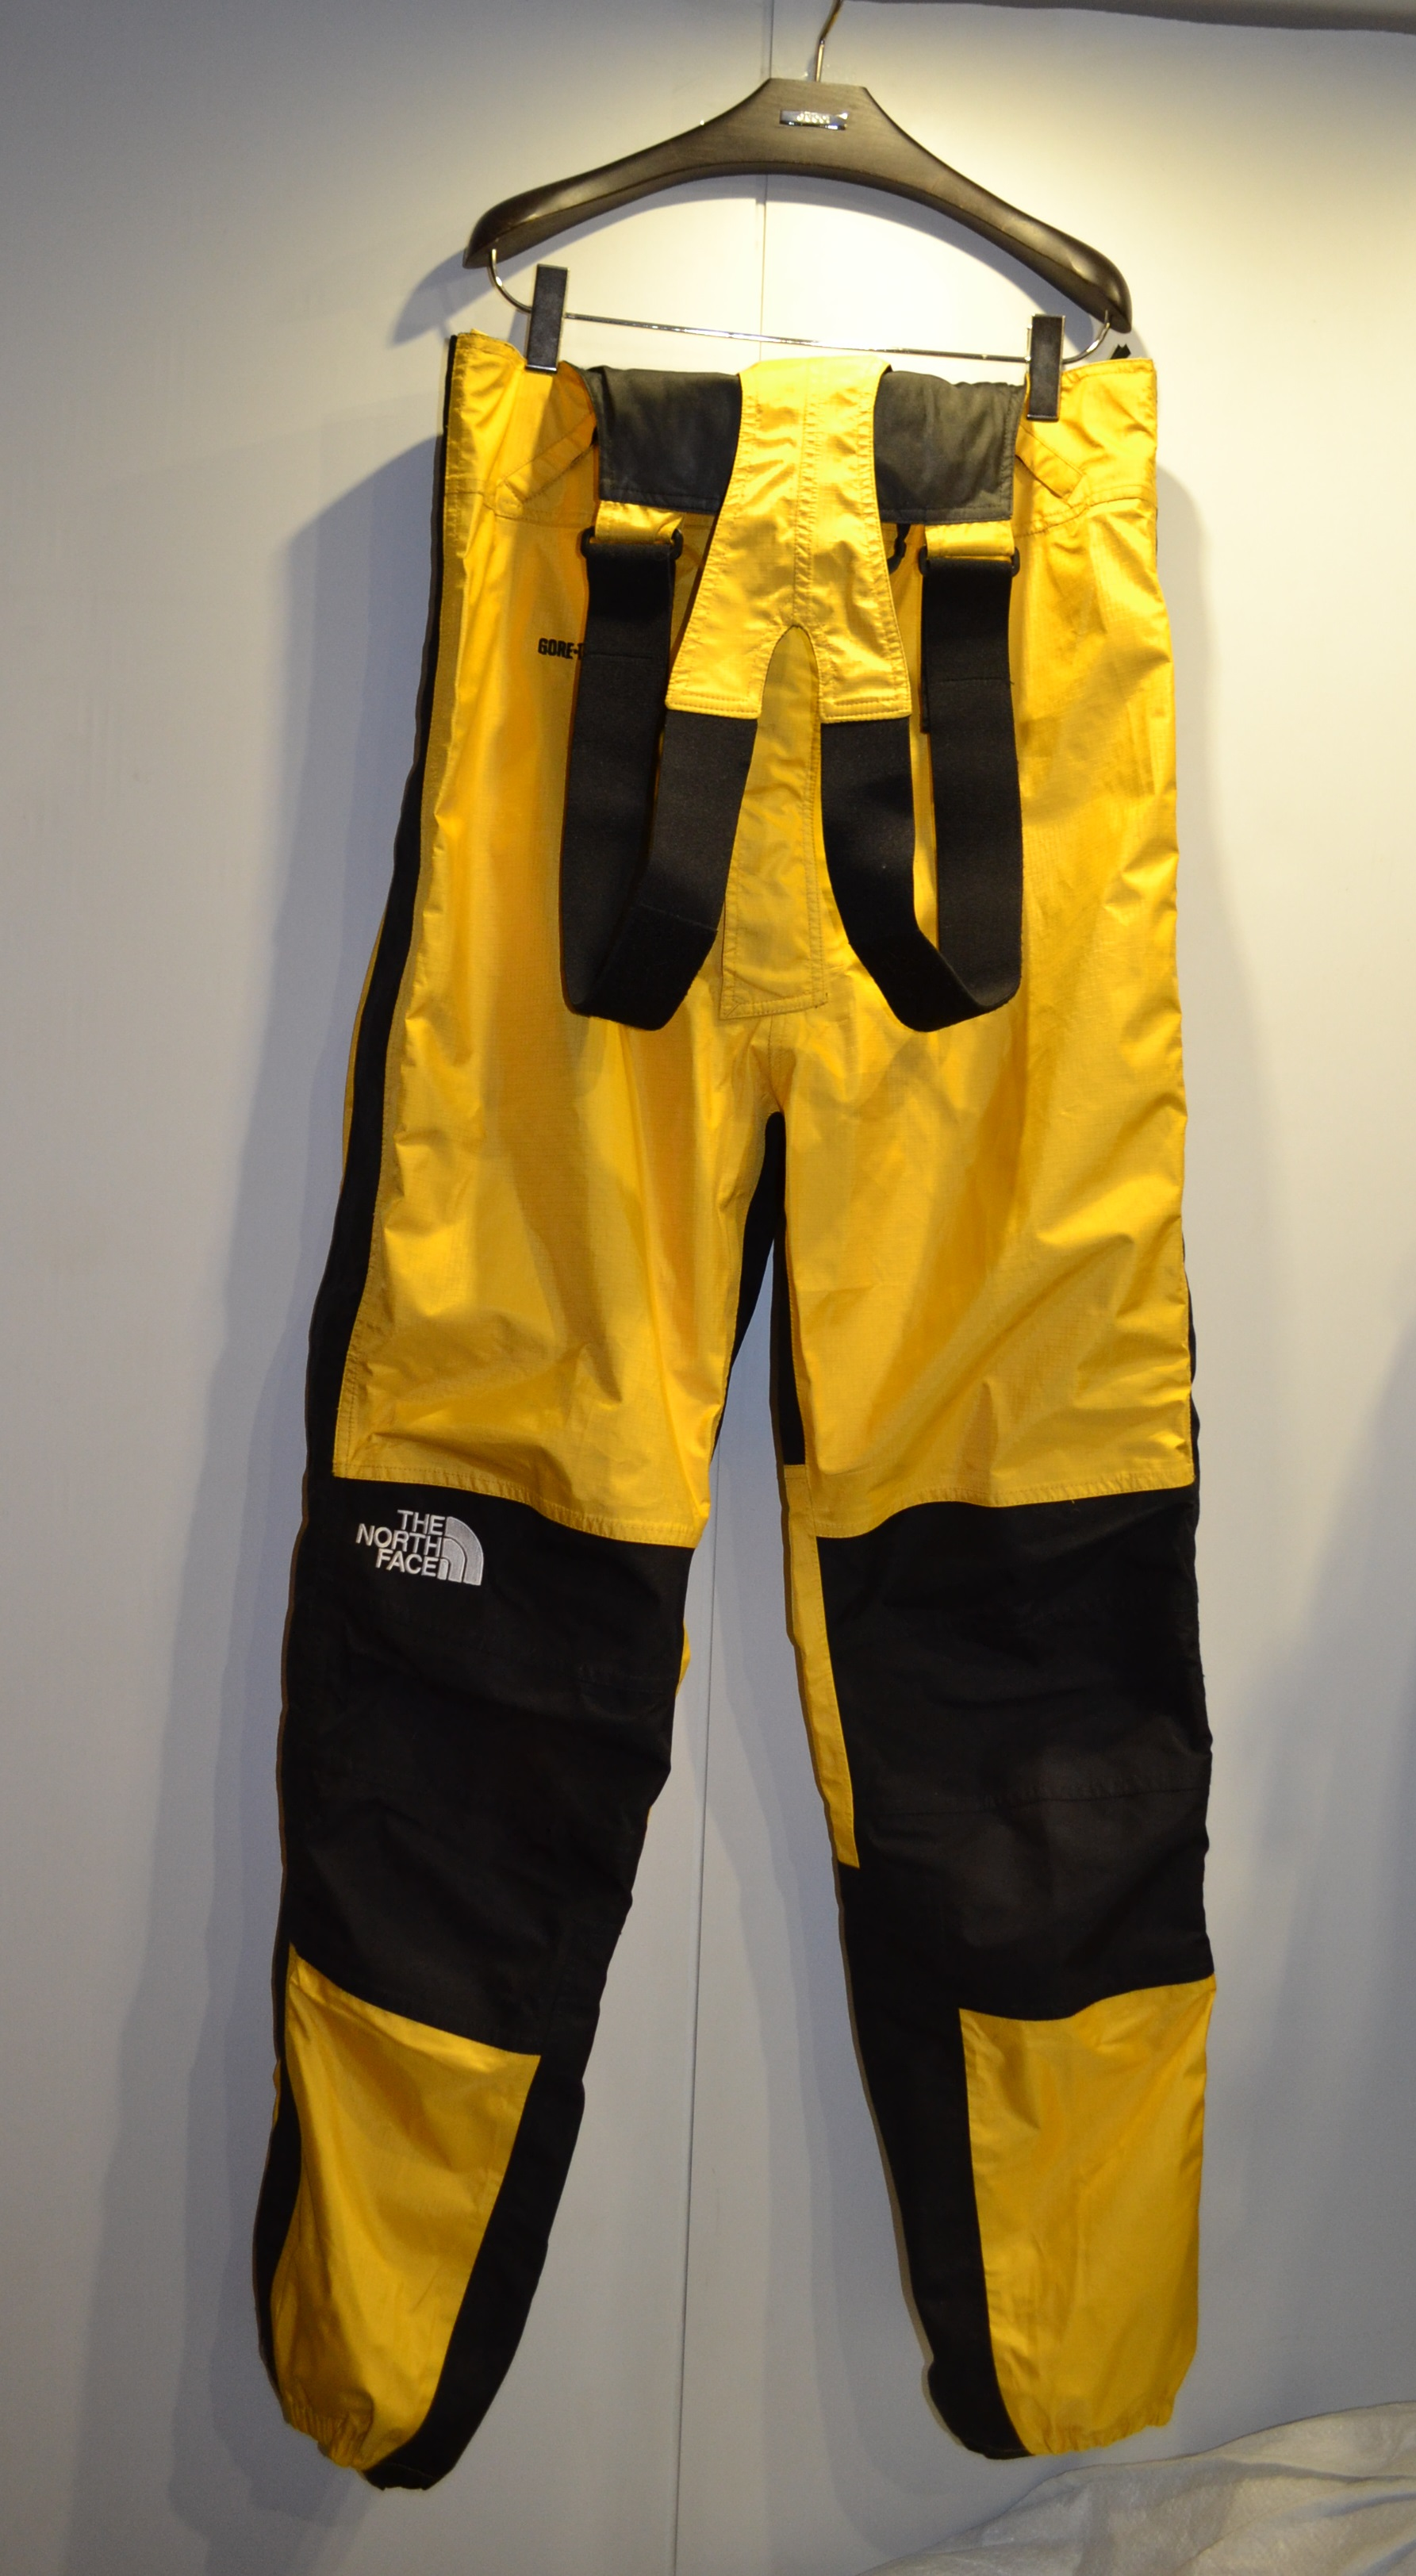 revendeur d8286 55538 The North Face Vintage BIB XL Overall Yellow Ripstop Gore-tex Deadstock  Winter Hardshell Suit Rare Supreme 90s piece Karakoram Salopette